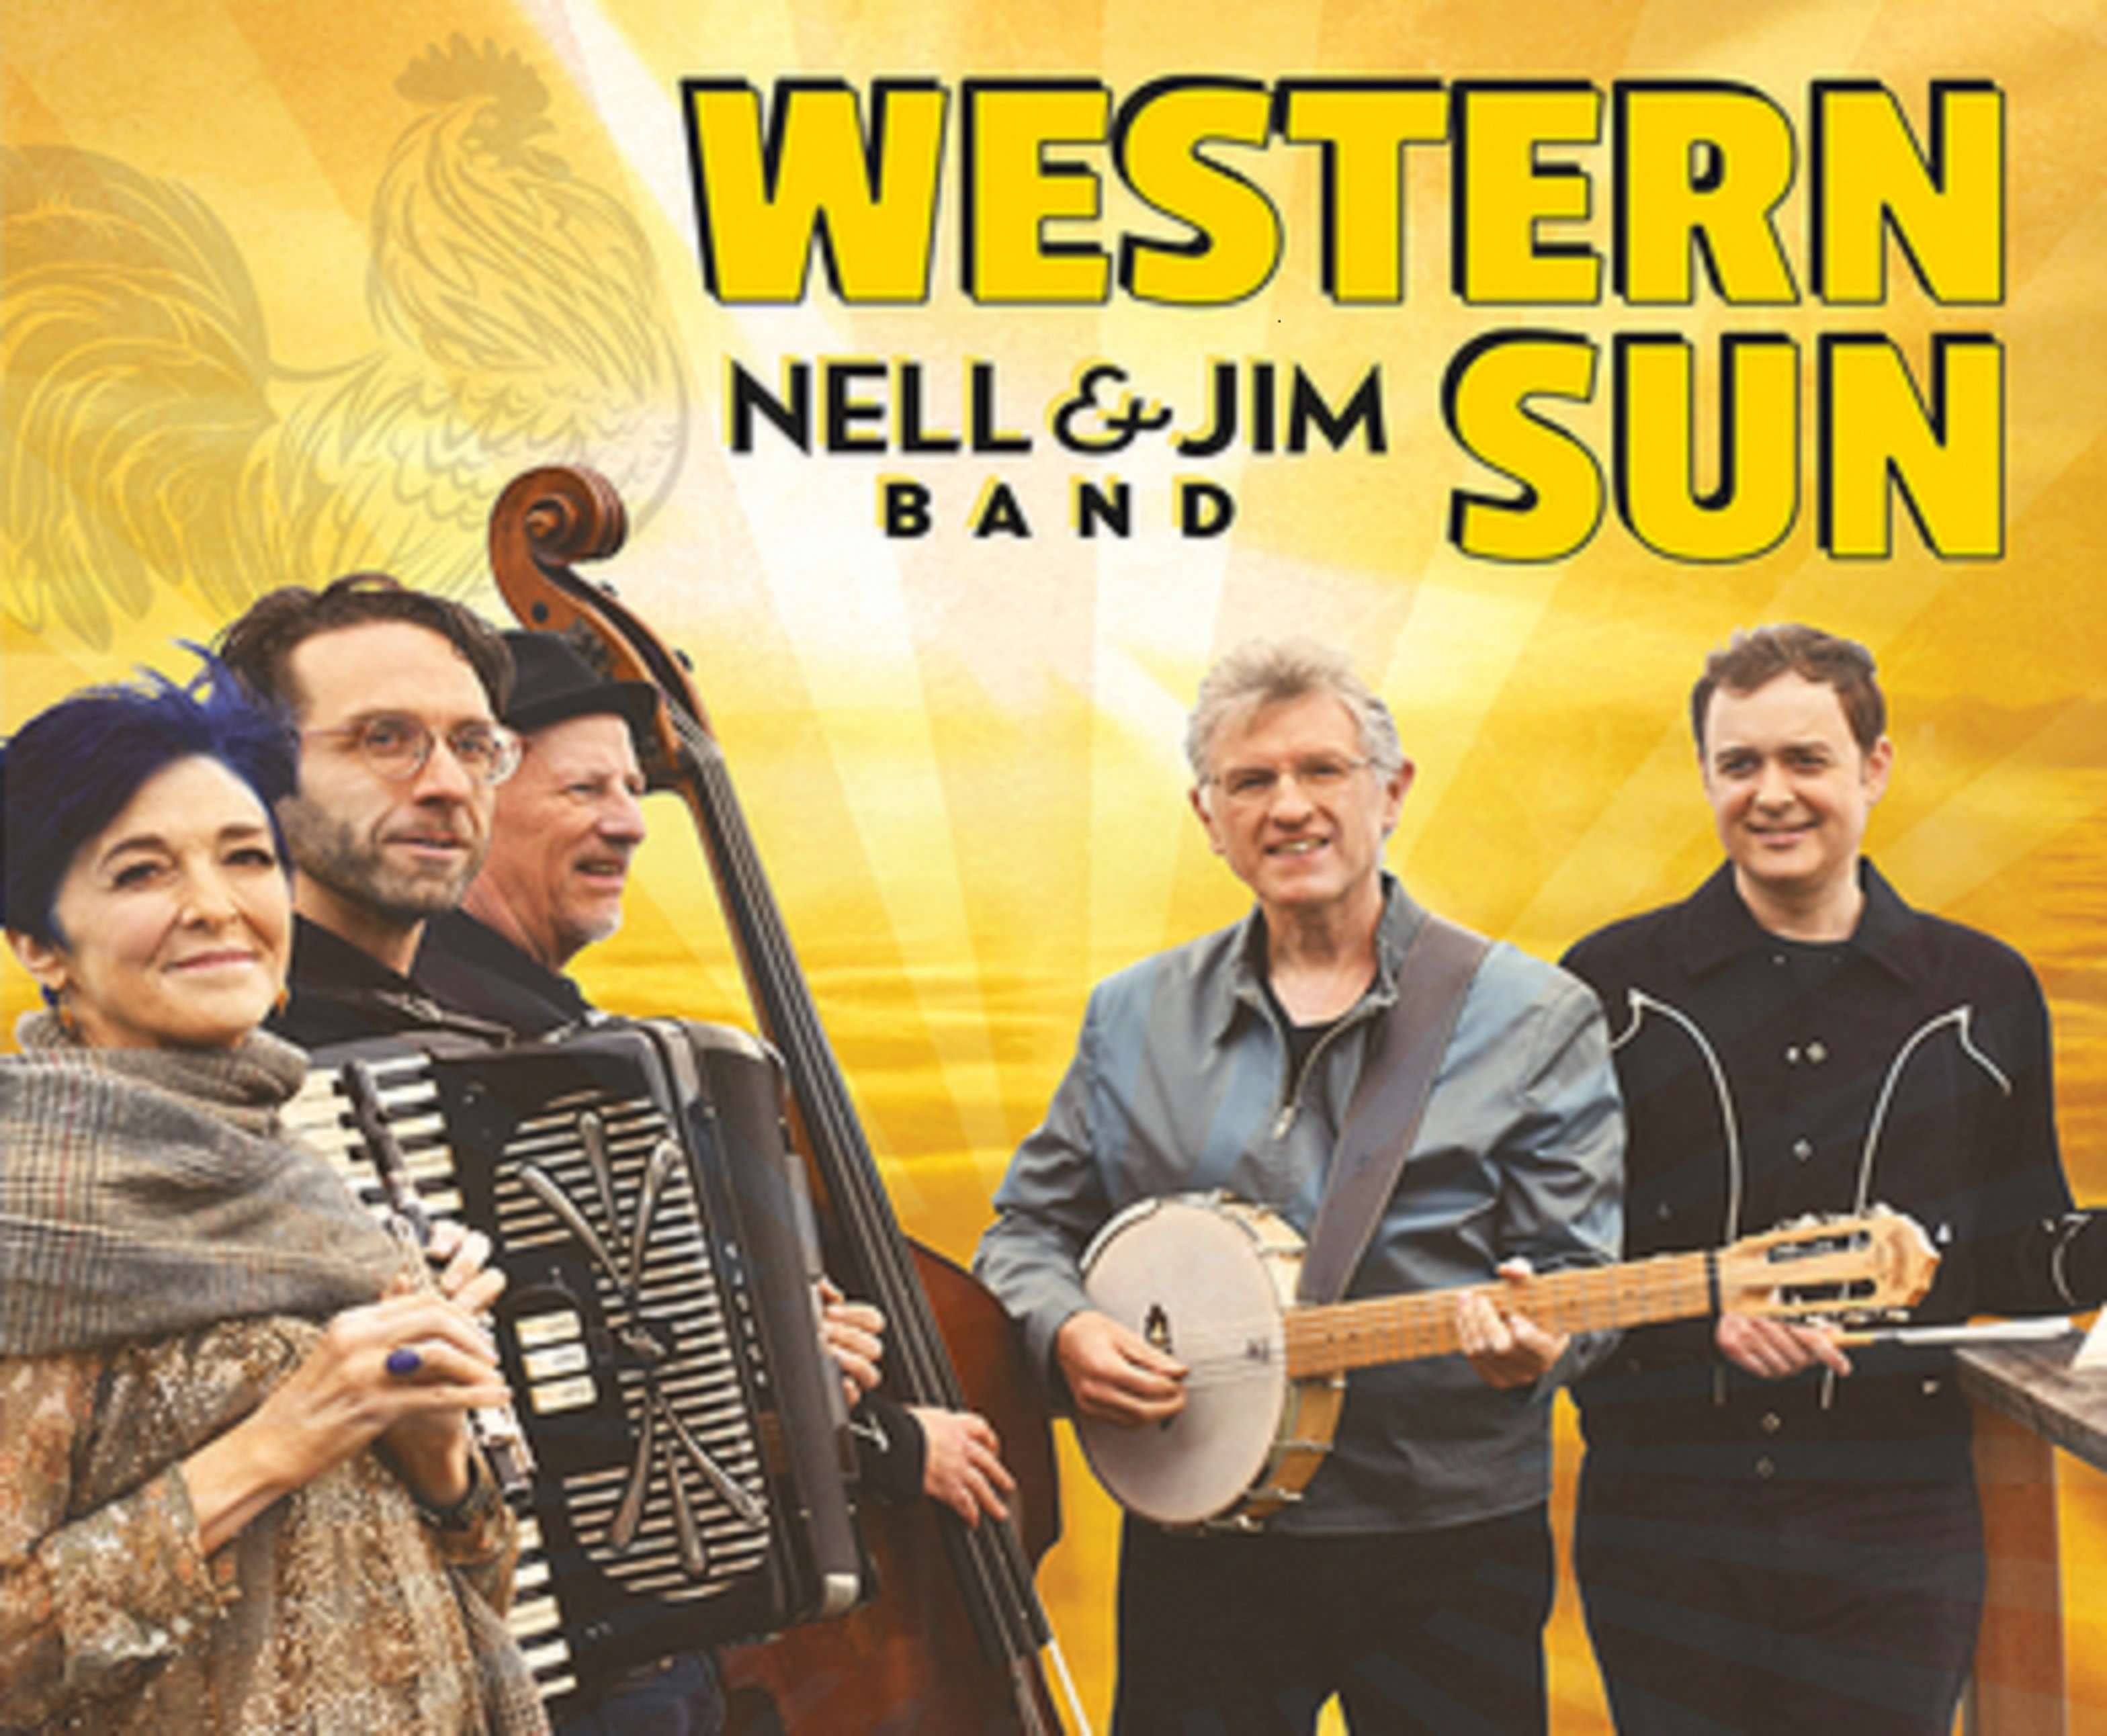 Nell & Jim Band To Release New Album Western Sun On May 29th